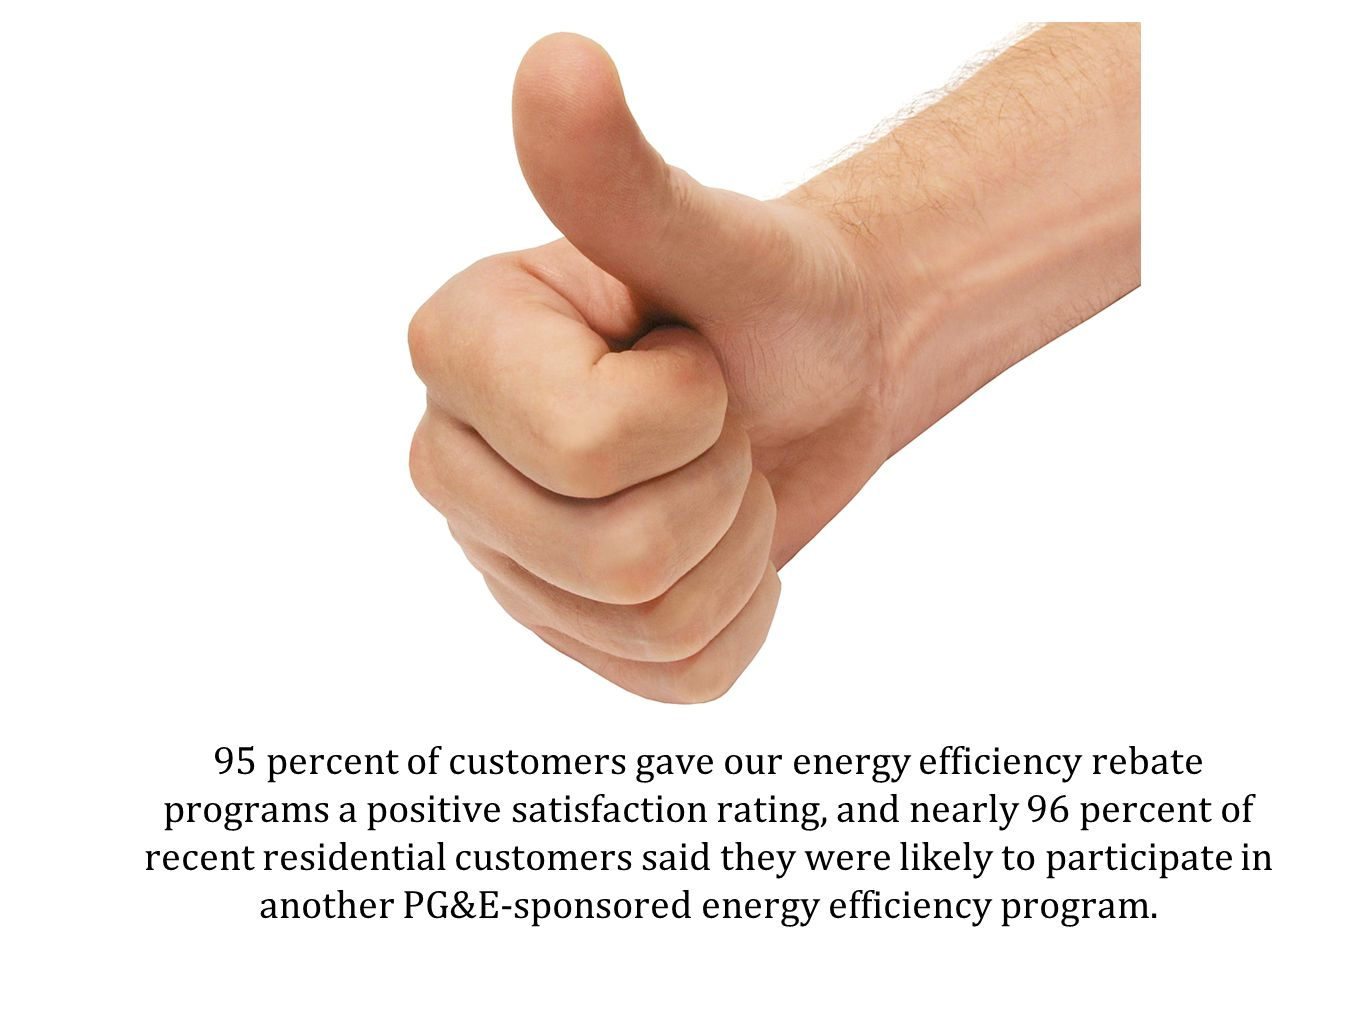 95 percent of customers gave our energy efficiency rebate programs a positive satisfaction rating, and nearly 96 percent of recent residential customers said they were likely to participate in another PG&E-sponsored energy efficiency program.